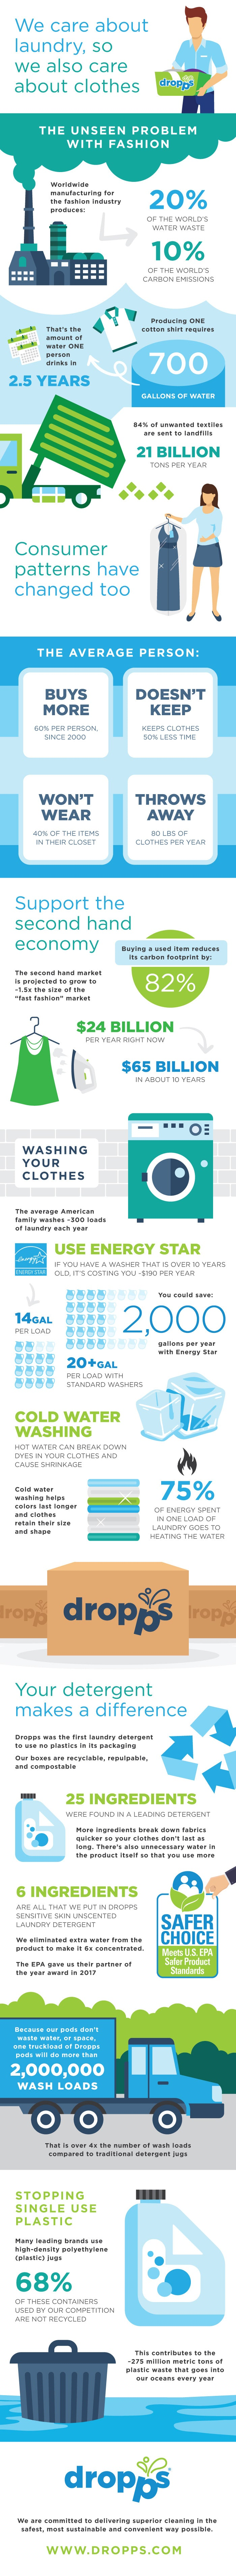 laundry detergent infographic data dropps